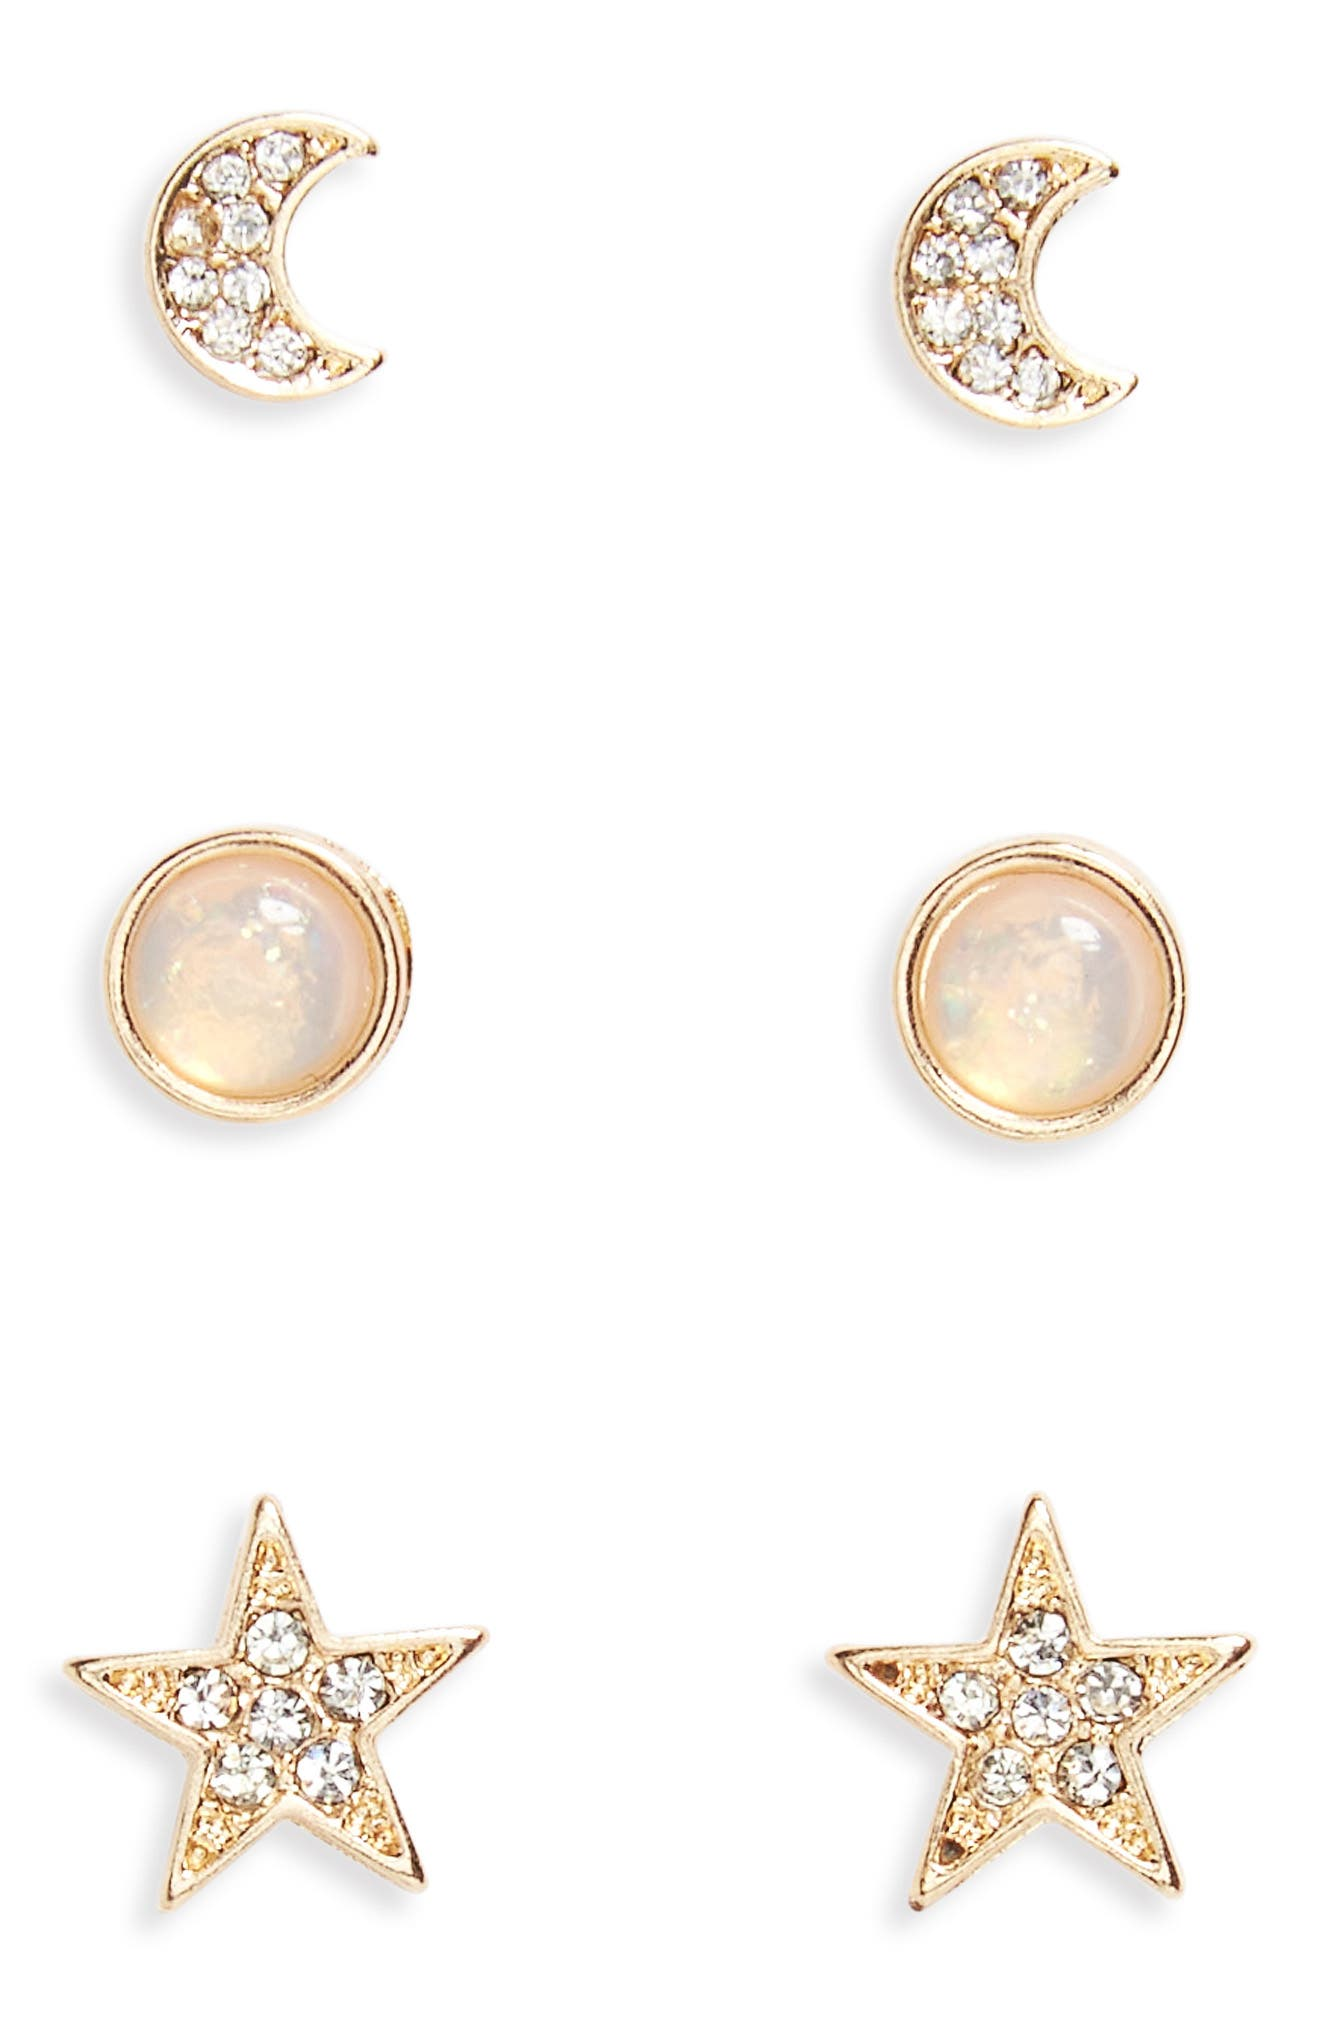 Moon, Star & Faux Opal 3-Pack Earrings,                         Main,                         color, 710